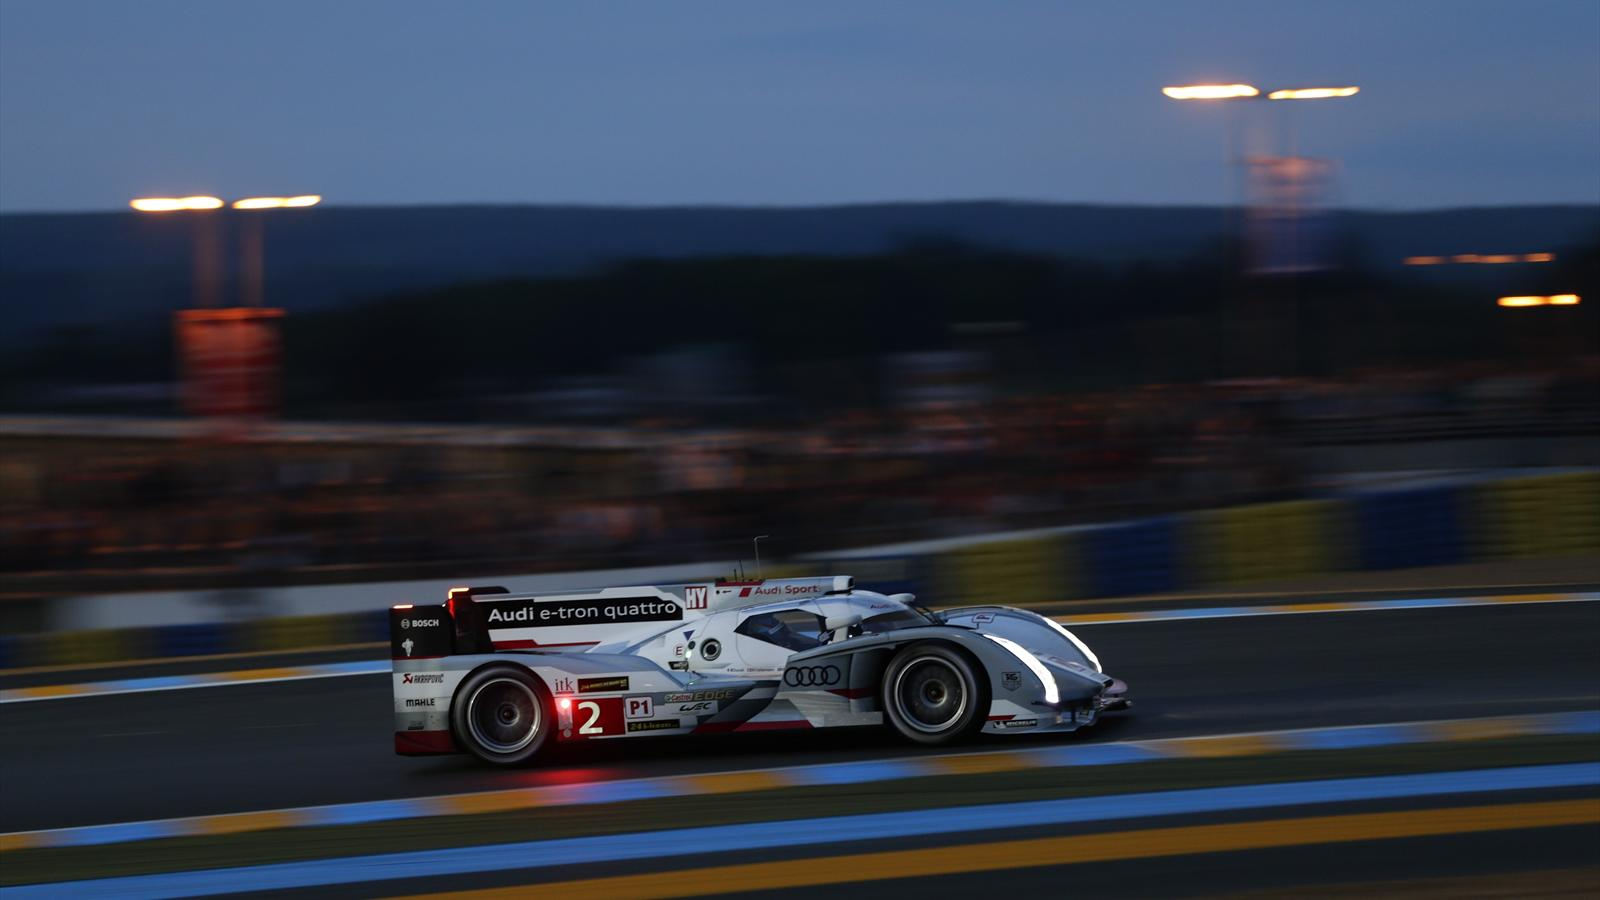 le classement final provisoire 24 heures du mans 2013 wec eurosport. Black Bedroom Furniture Sets. Home Design Ideas